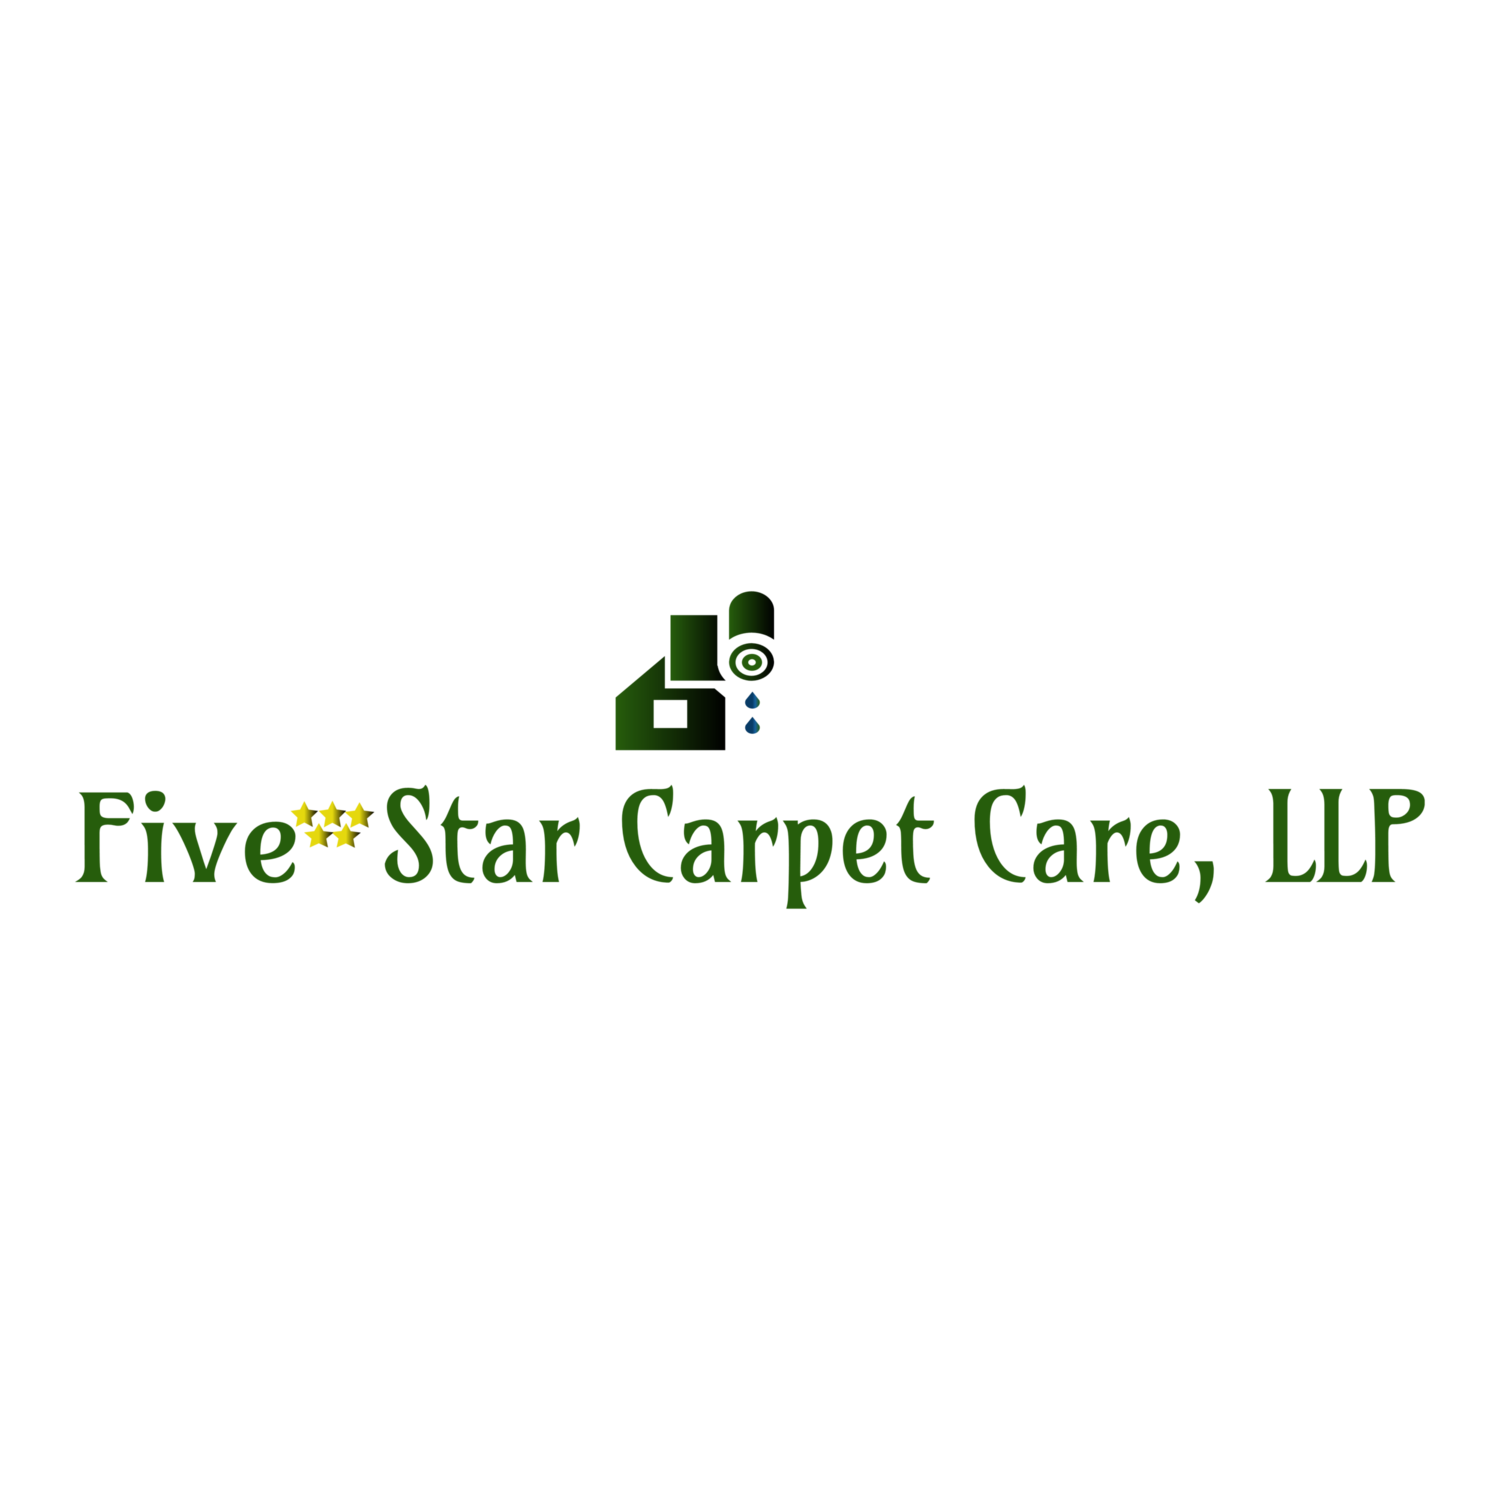 Five Star Carpet Care, LLP